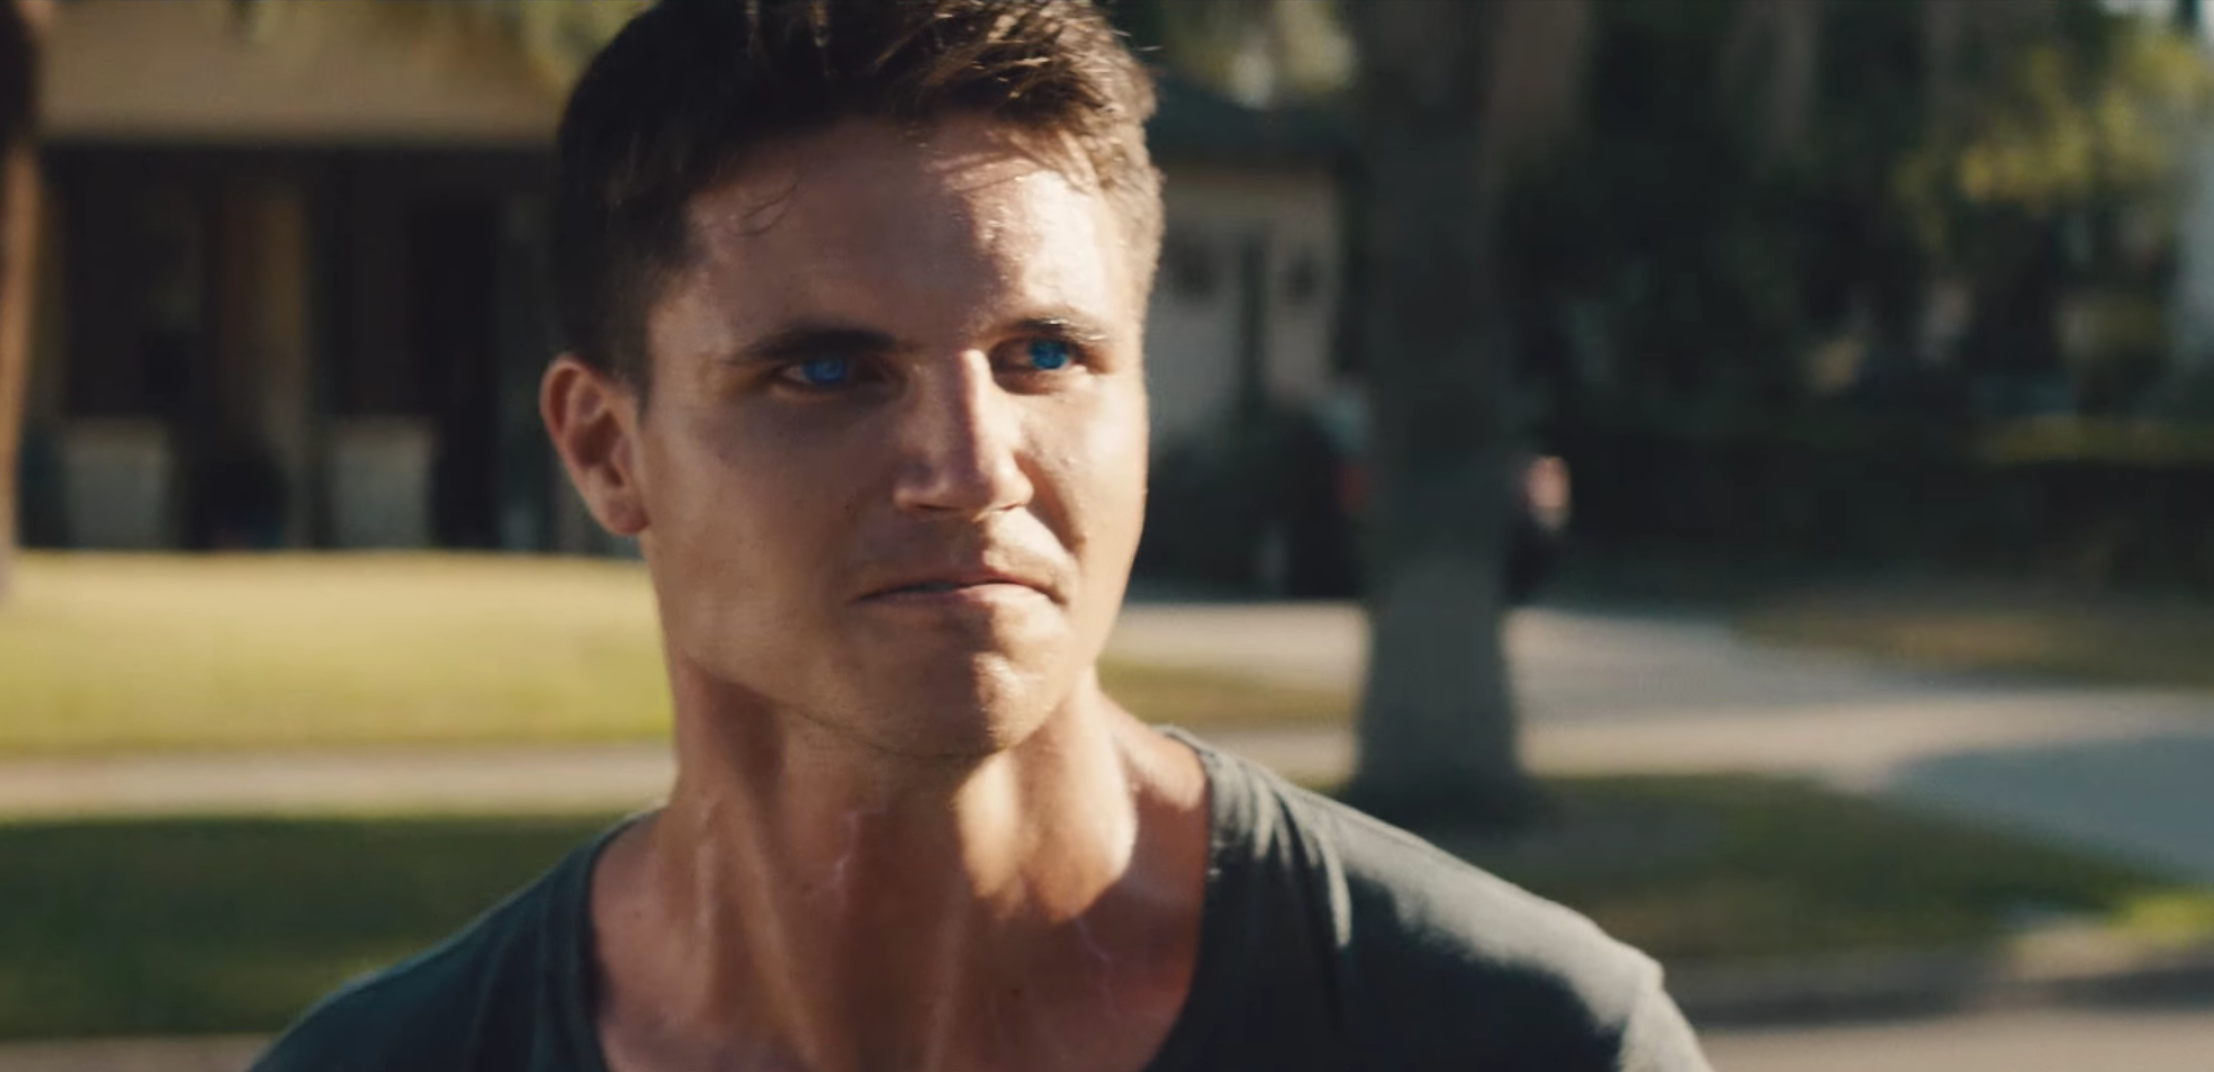 Robbie Amell Robbie Amell new picture